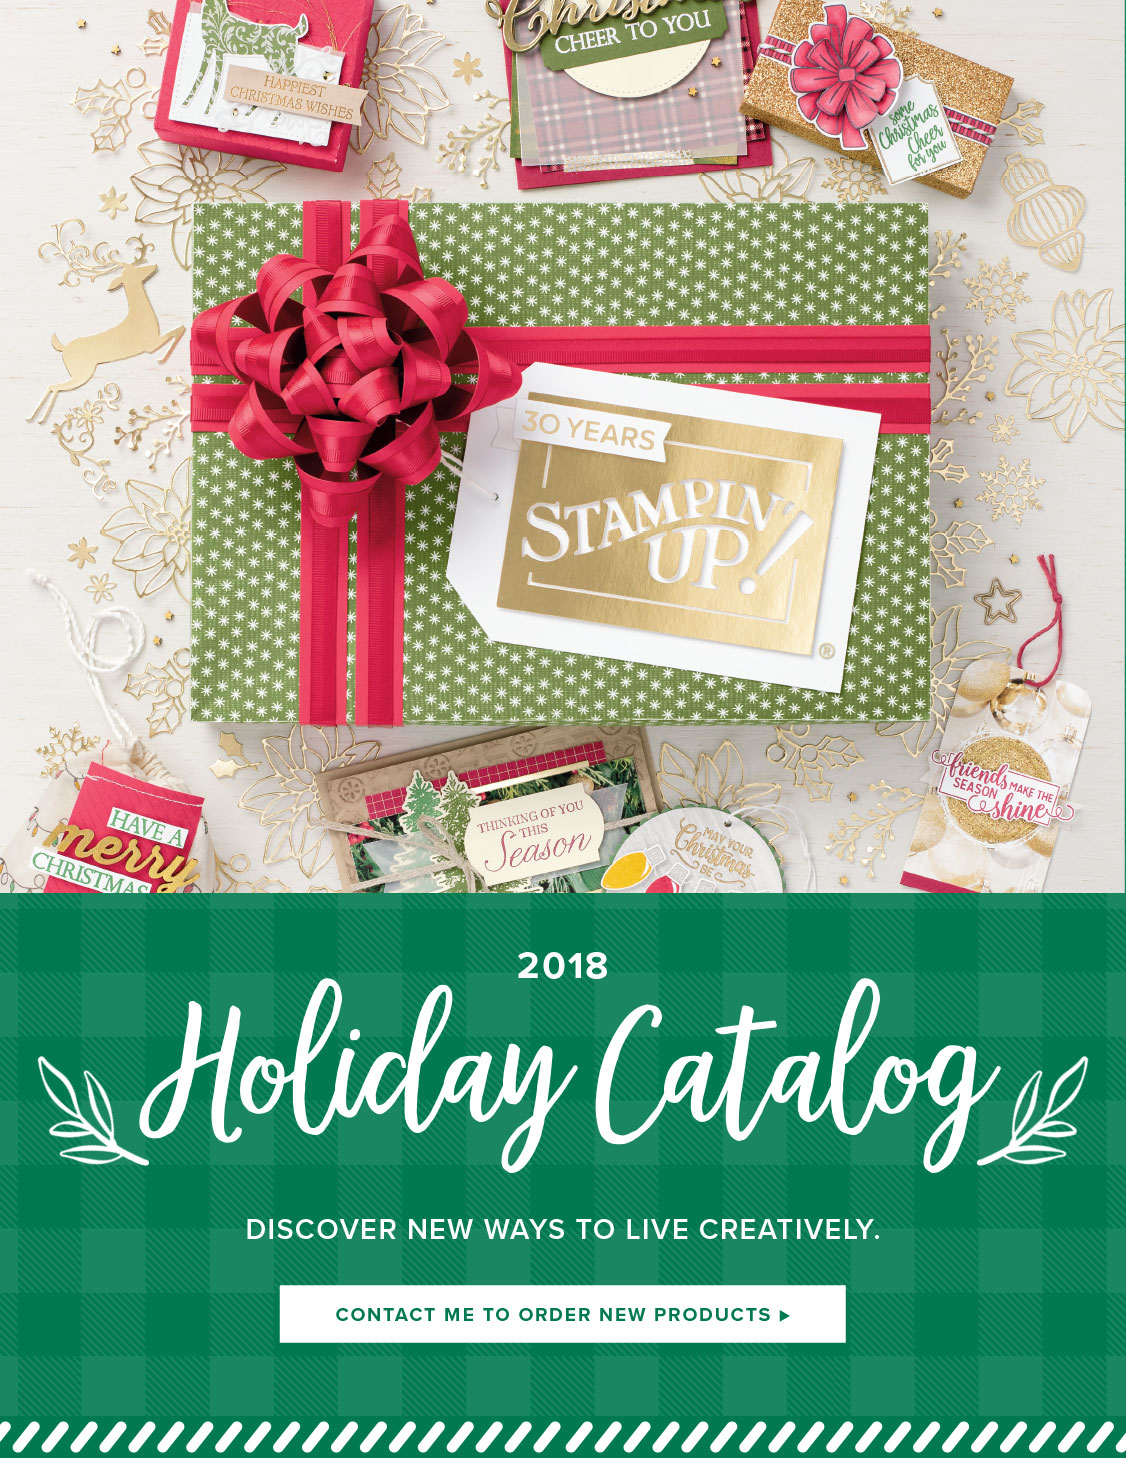 https://su-media.s3.amazonaws.com/media/catalogs/2018%20Holiday%20Catalog/Shareable%20Images/08.01.18_SHAREABLE1_HOLIDAY_CATALOG_US.jpg